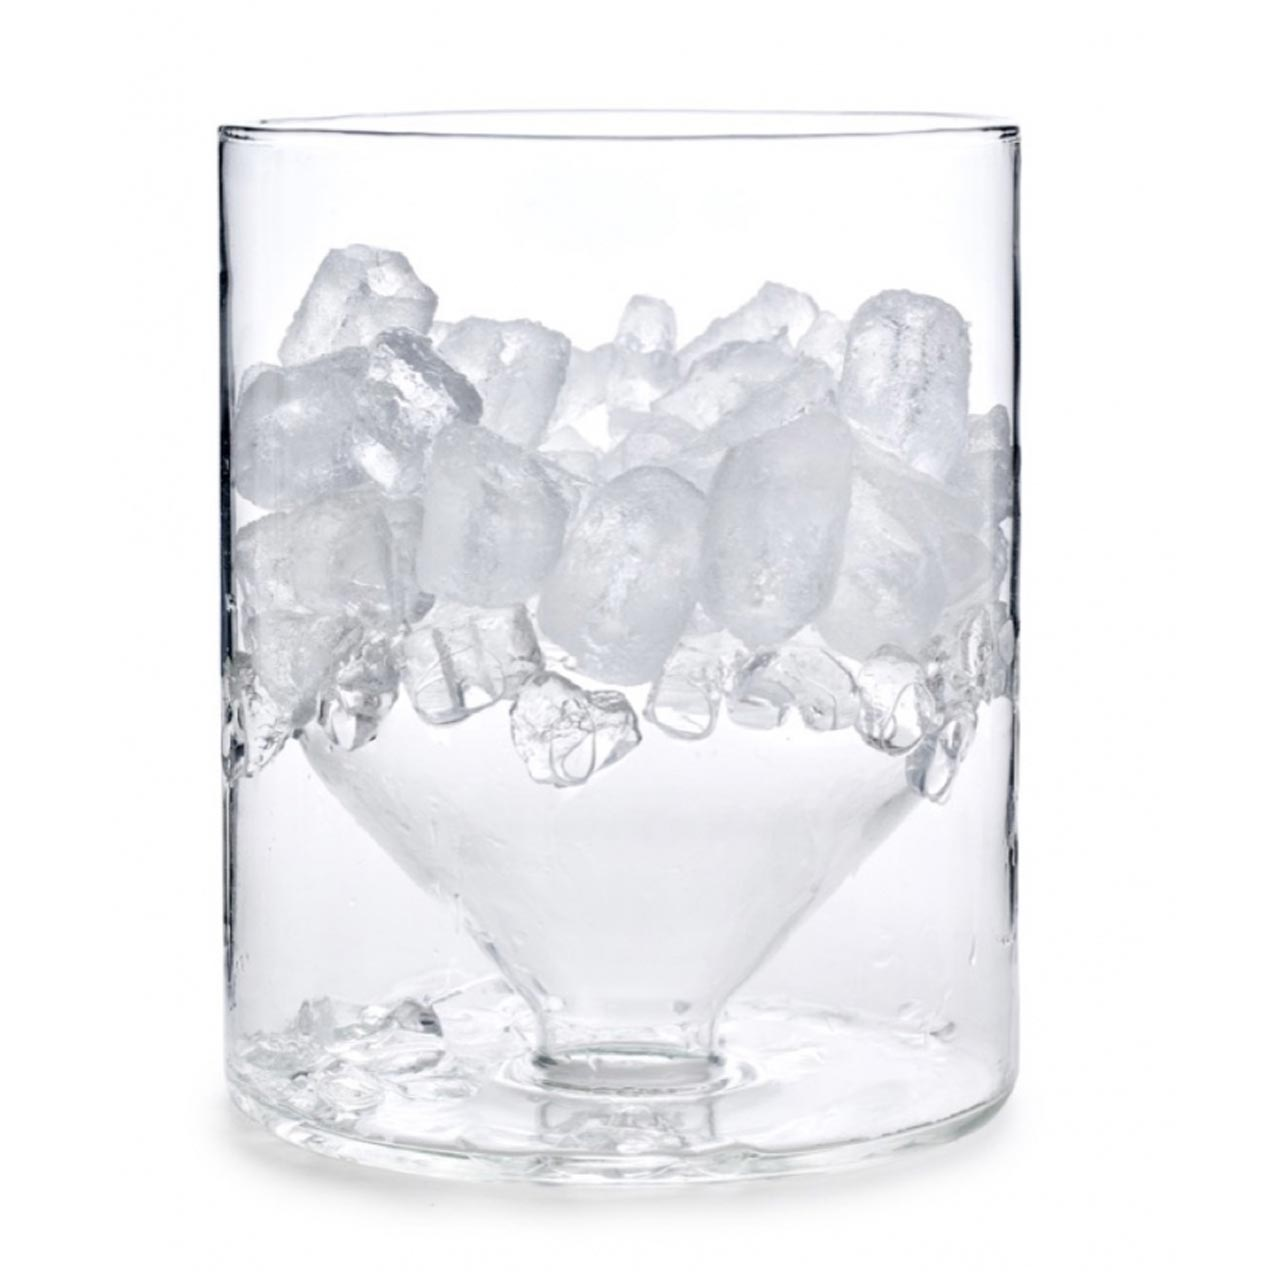 Ice Bucket by Design Memorabilia